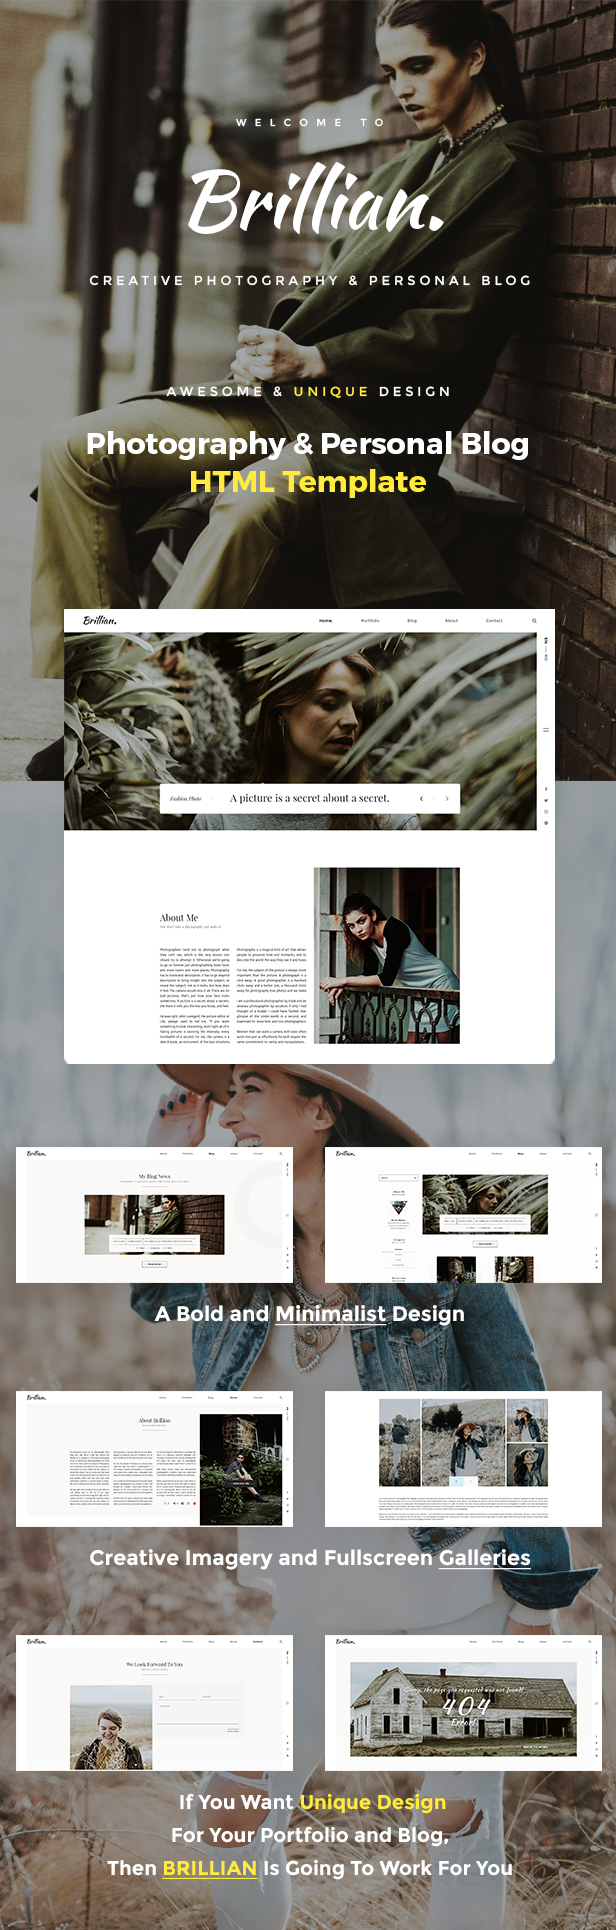 BRILLIAN - Photography, Personal, Blog HTML Template by murren20 ...